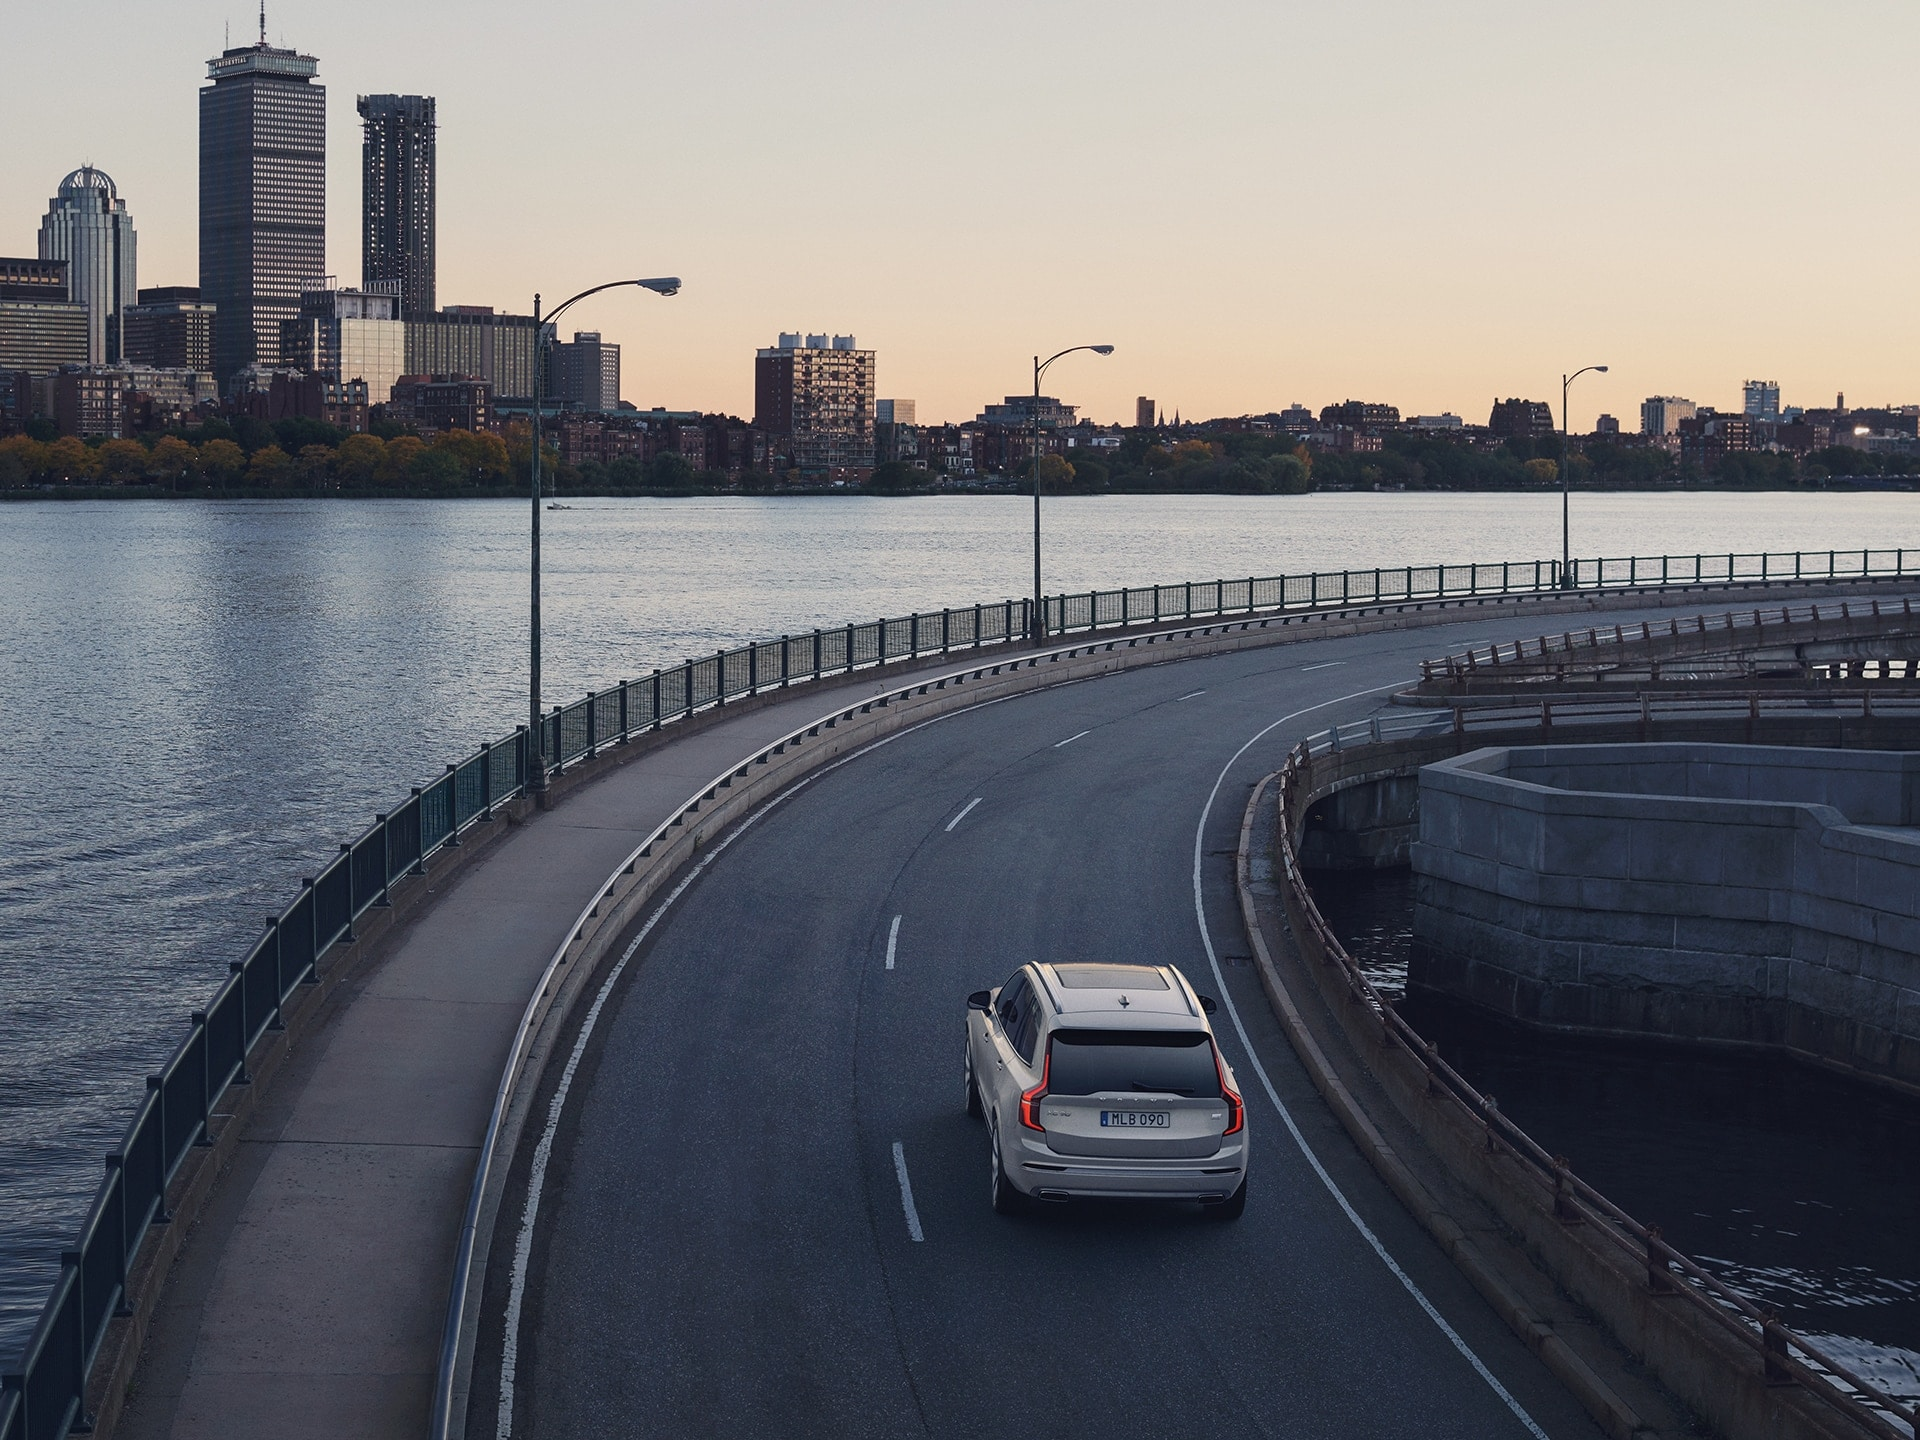 A Volvo XC90 follows a curve along with the water